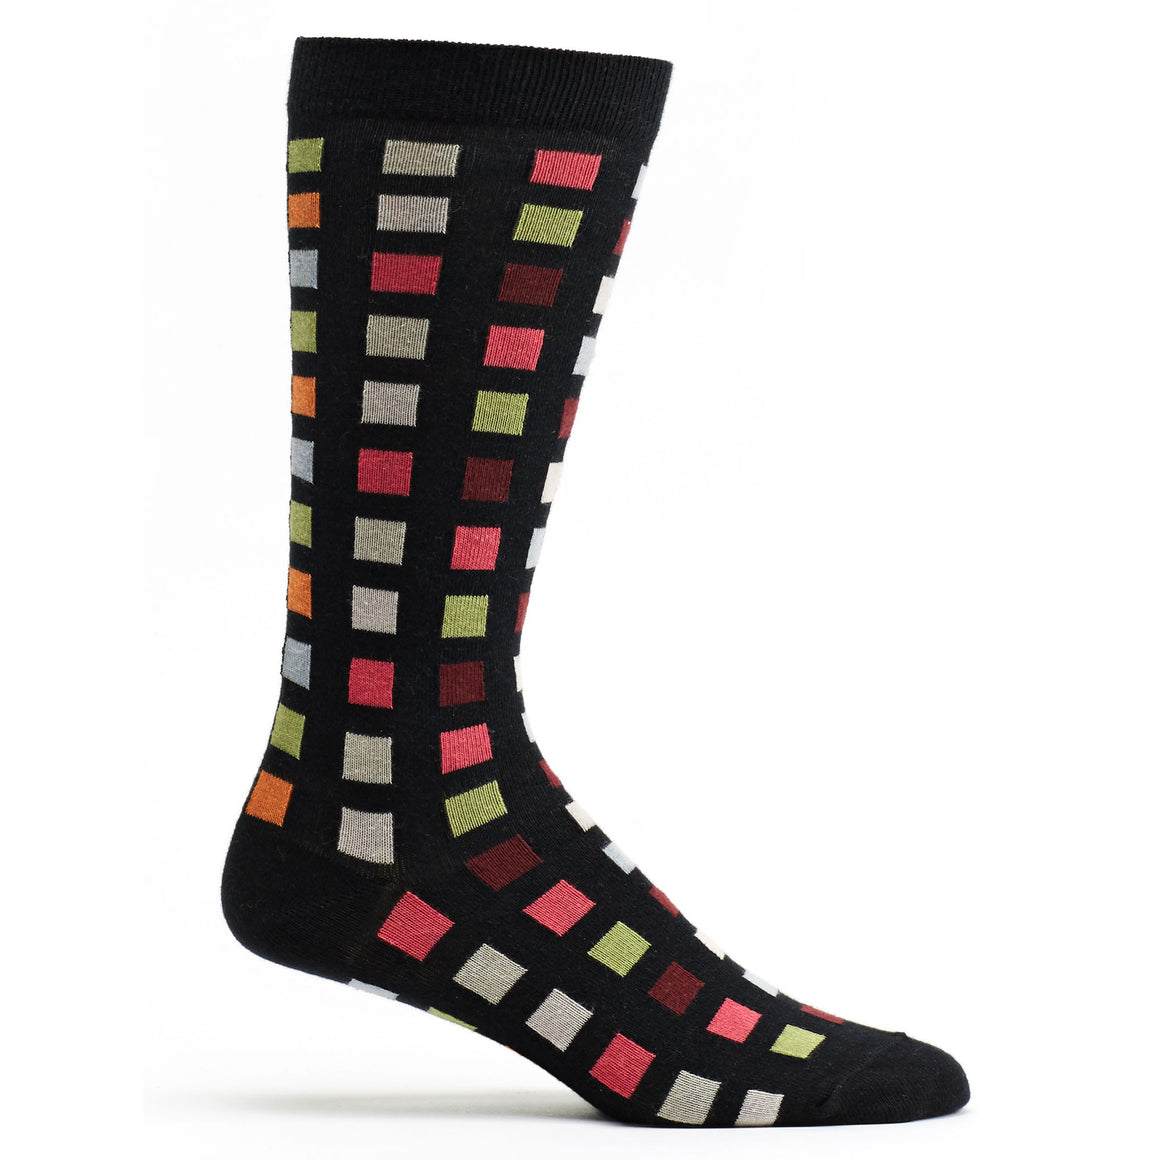 Square Flair Sock in Black size 10-13 mens geometrics from ozone socks